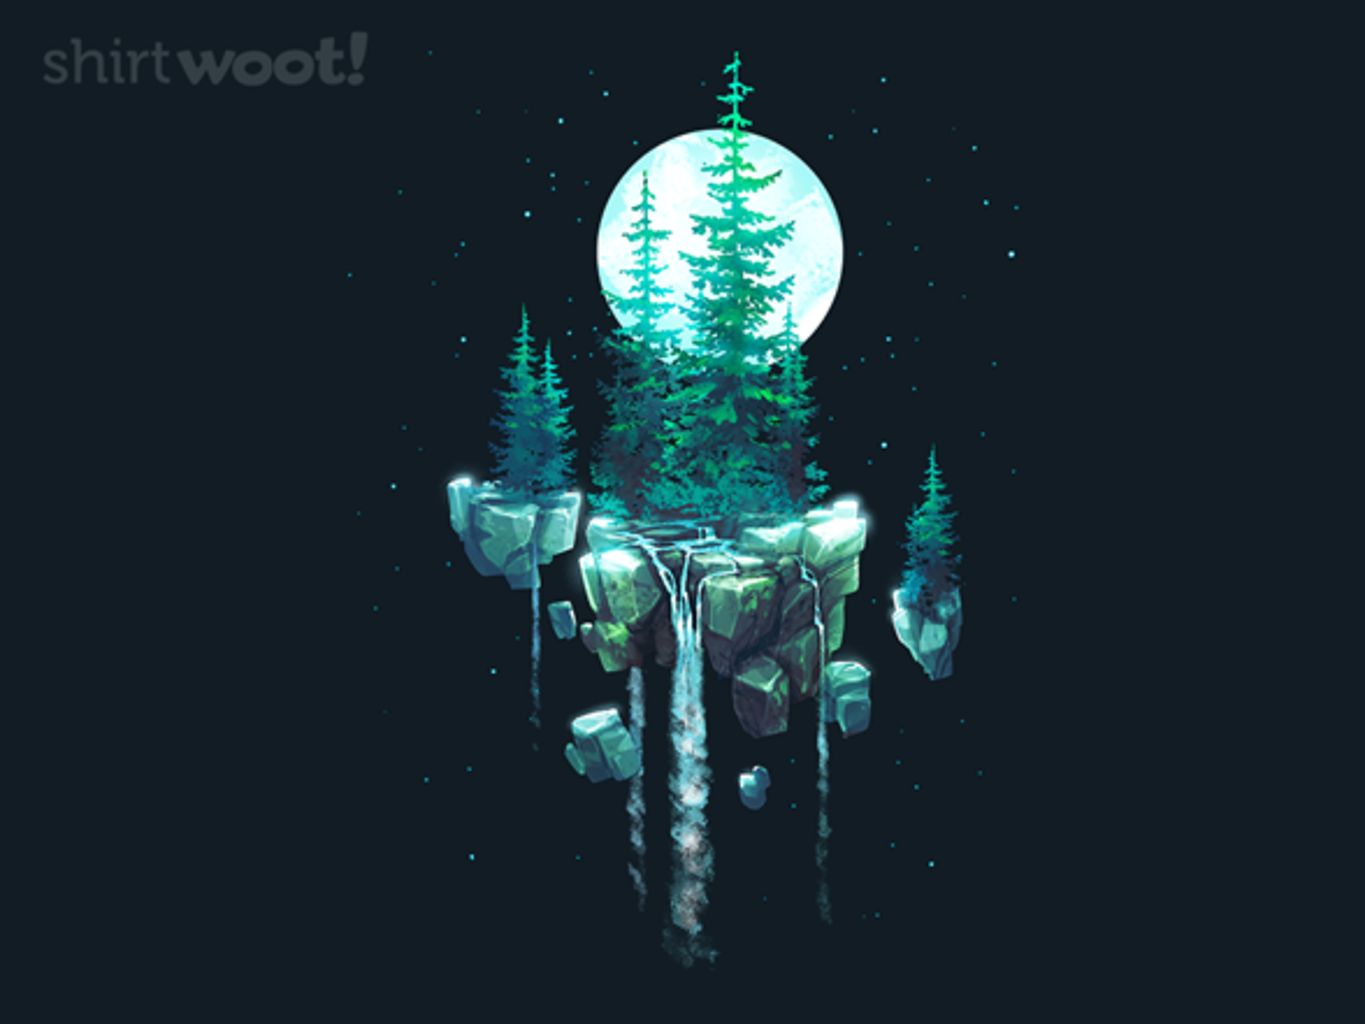 Woot!: Forest Moon